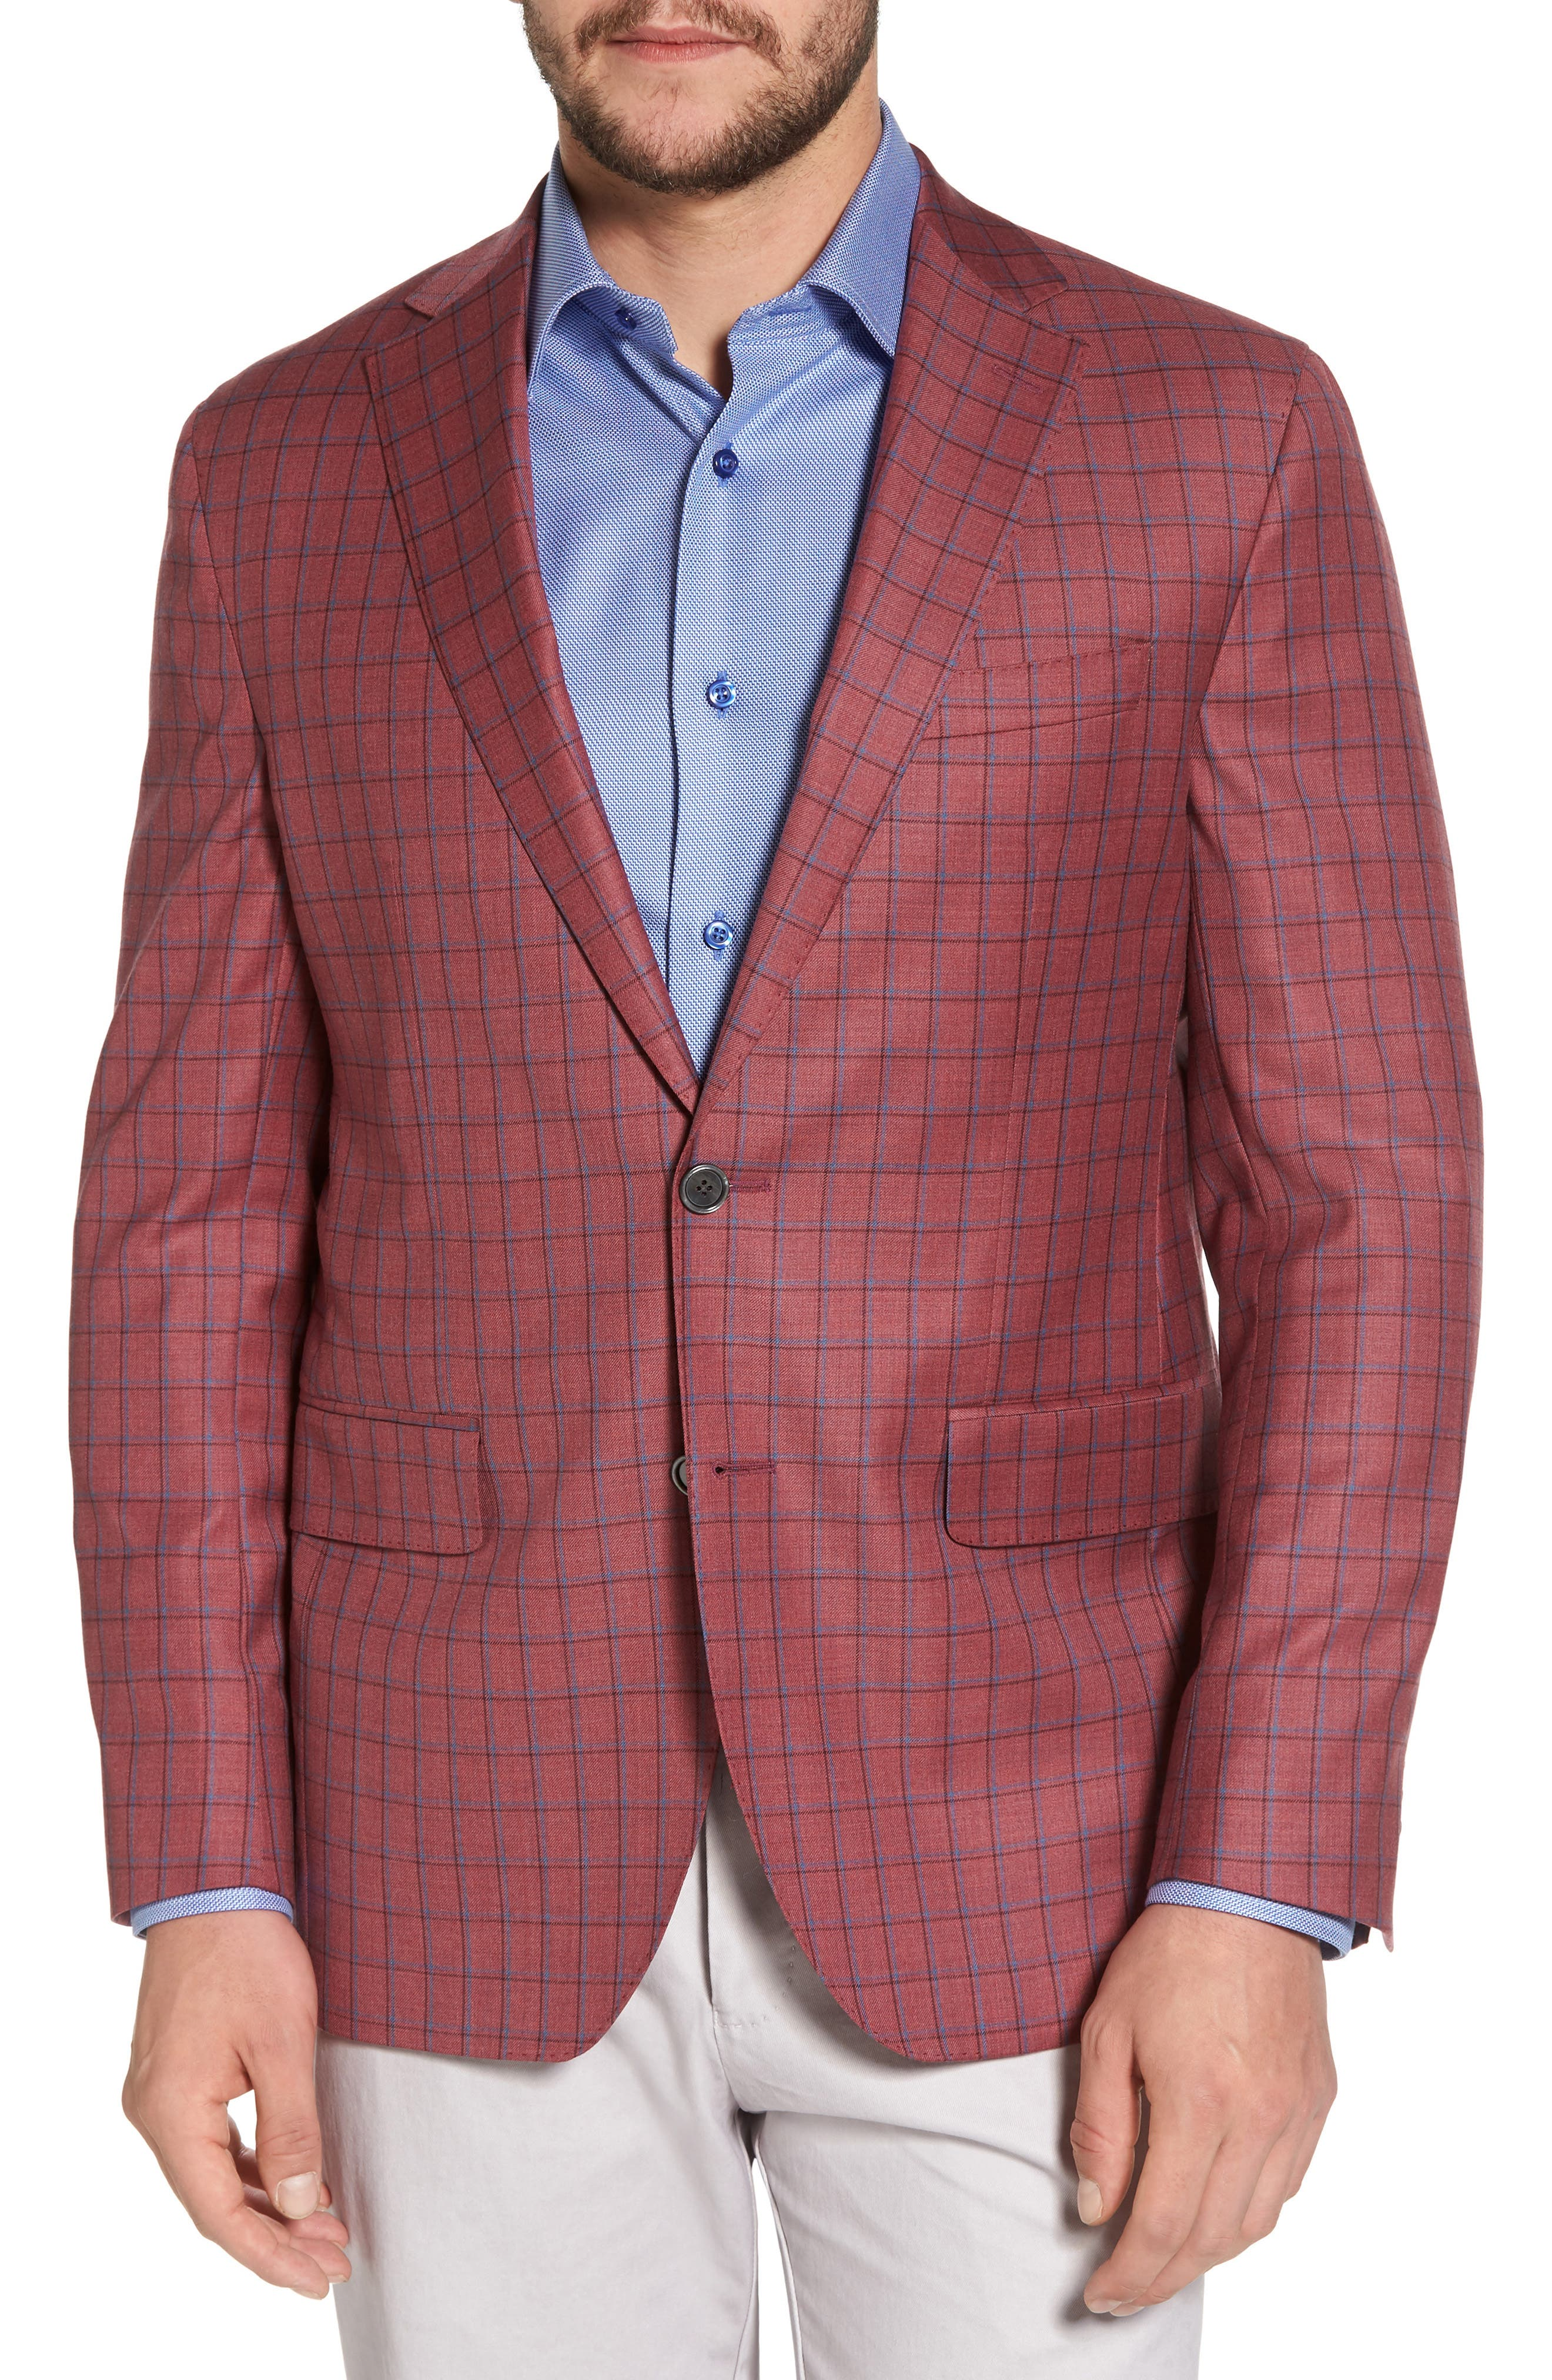 Arnold Classic Fit Plaid Wool Sport Coat,                             Main thumbnail 1, color,                             600